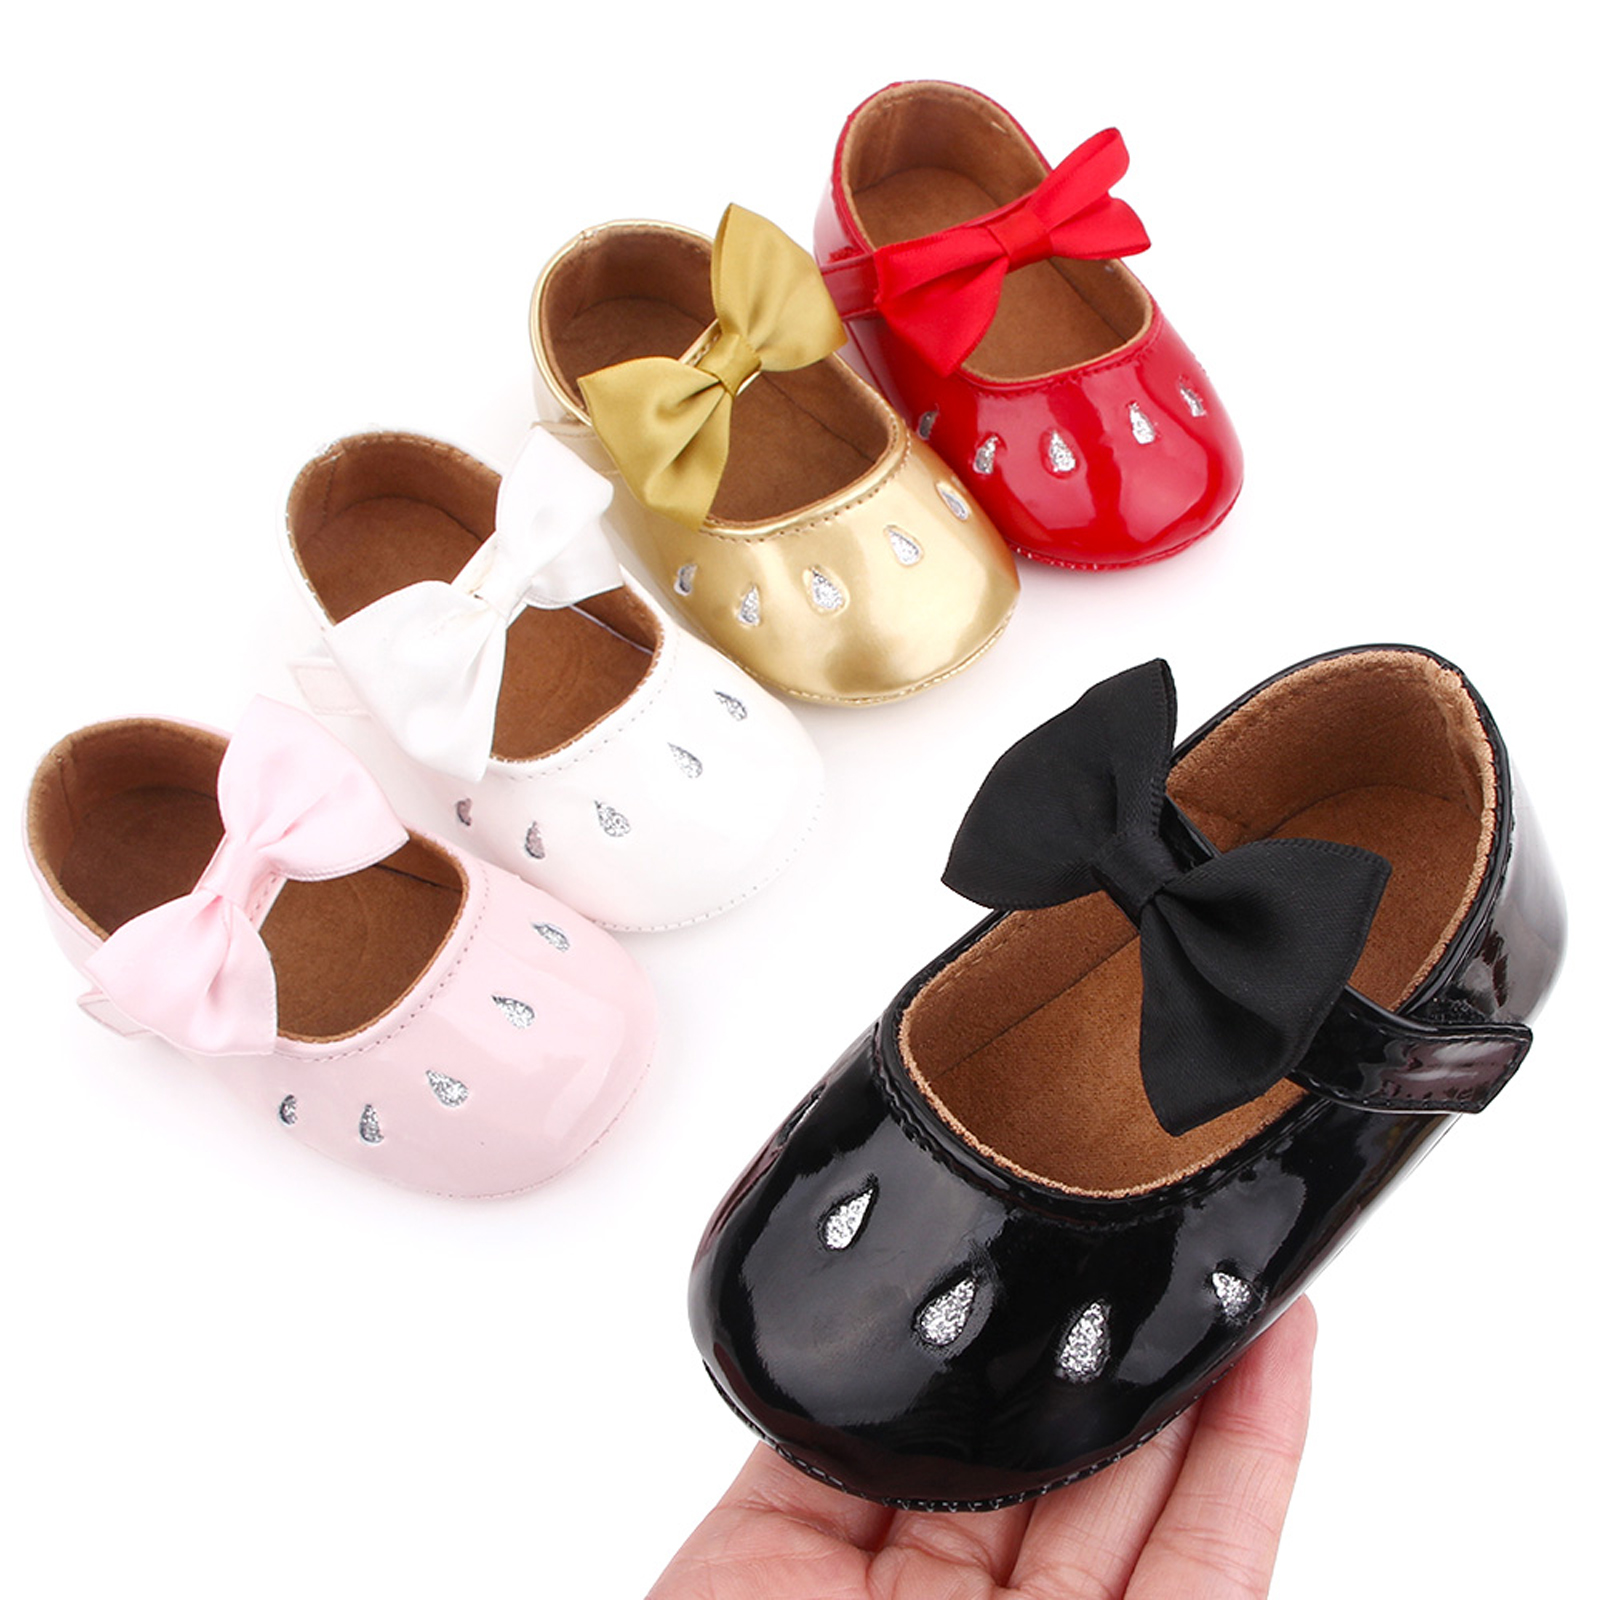 0-12Months New Cute Baby Girl Princess Shoes PU Leather Bowknot Flats Non-Slip Soft Sole First Walkers Shiny Leather All Seasons